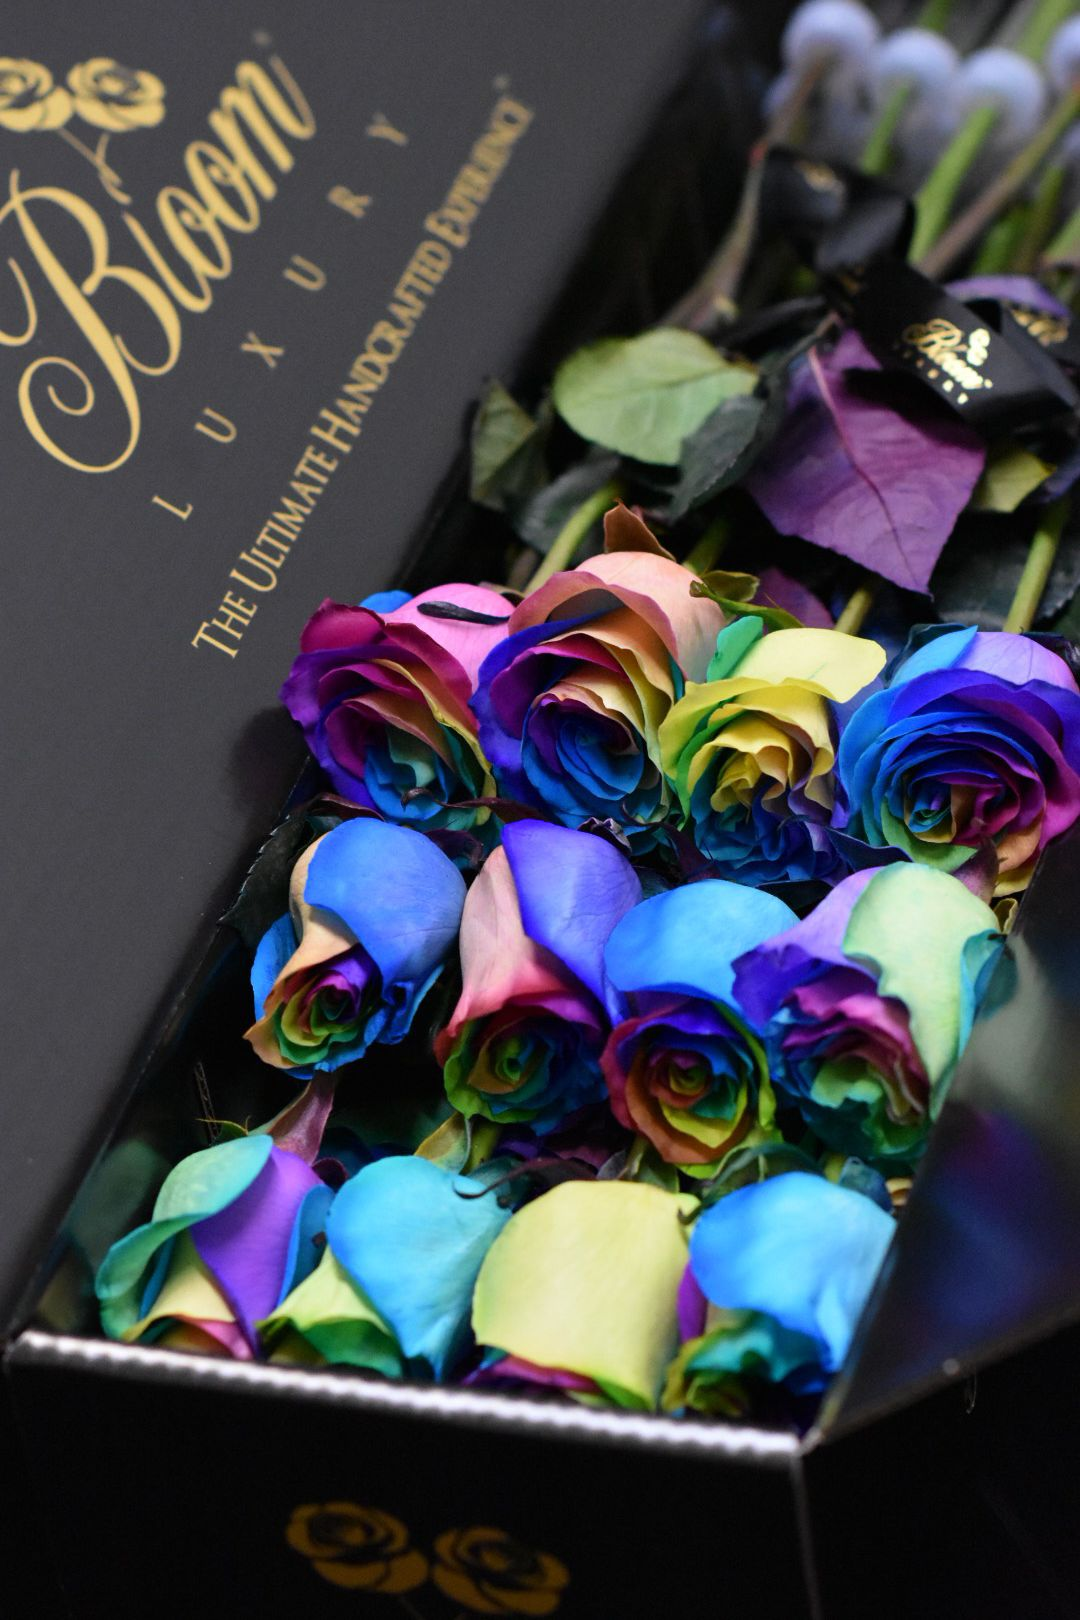 Out of this world happiness. BloomLuxury rainbow roses